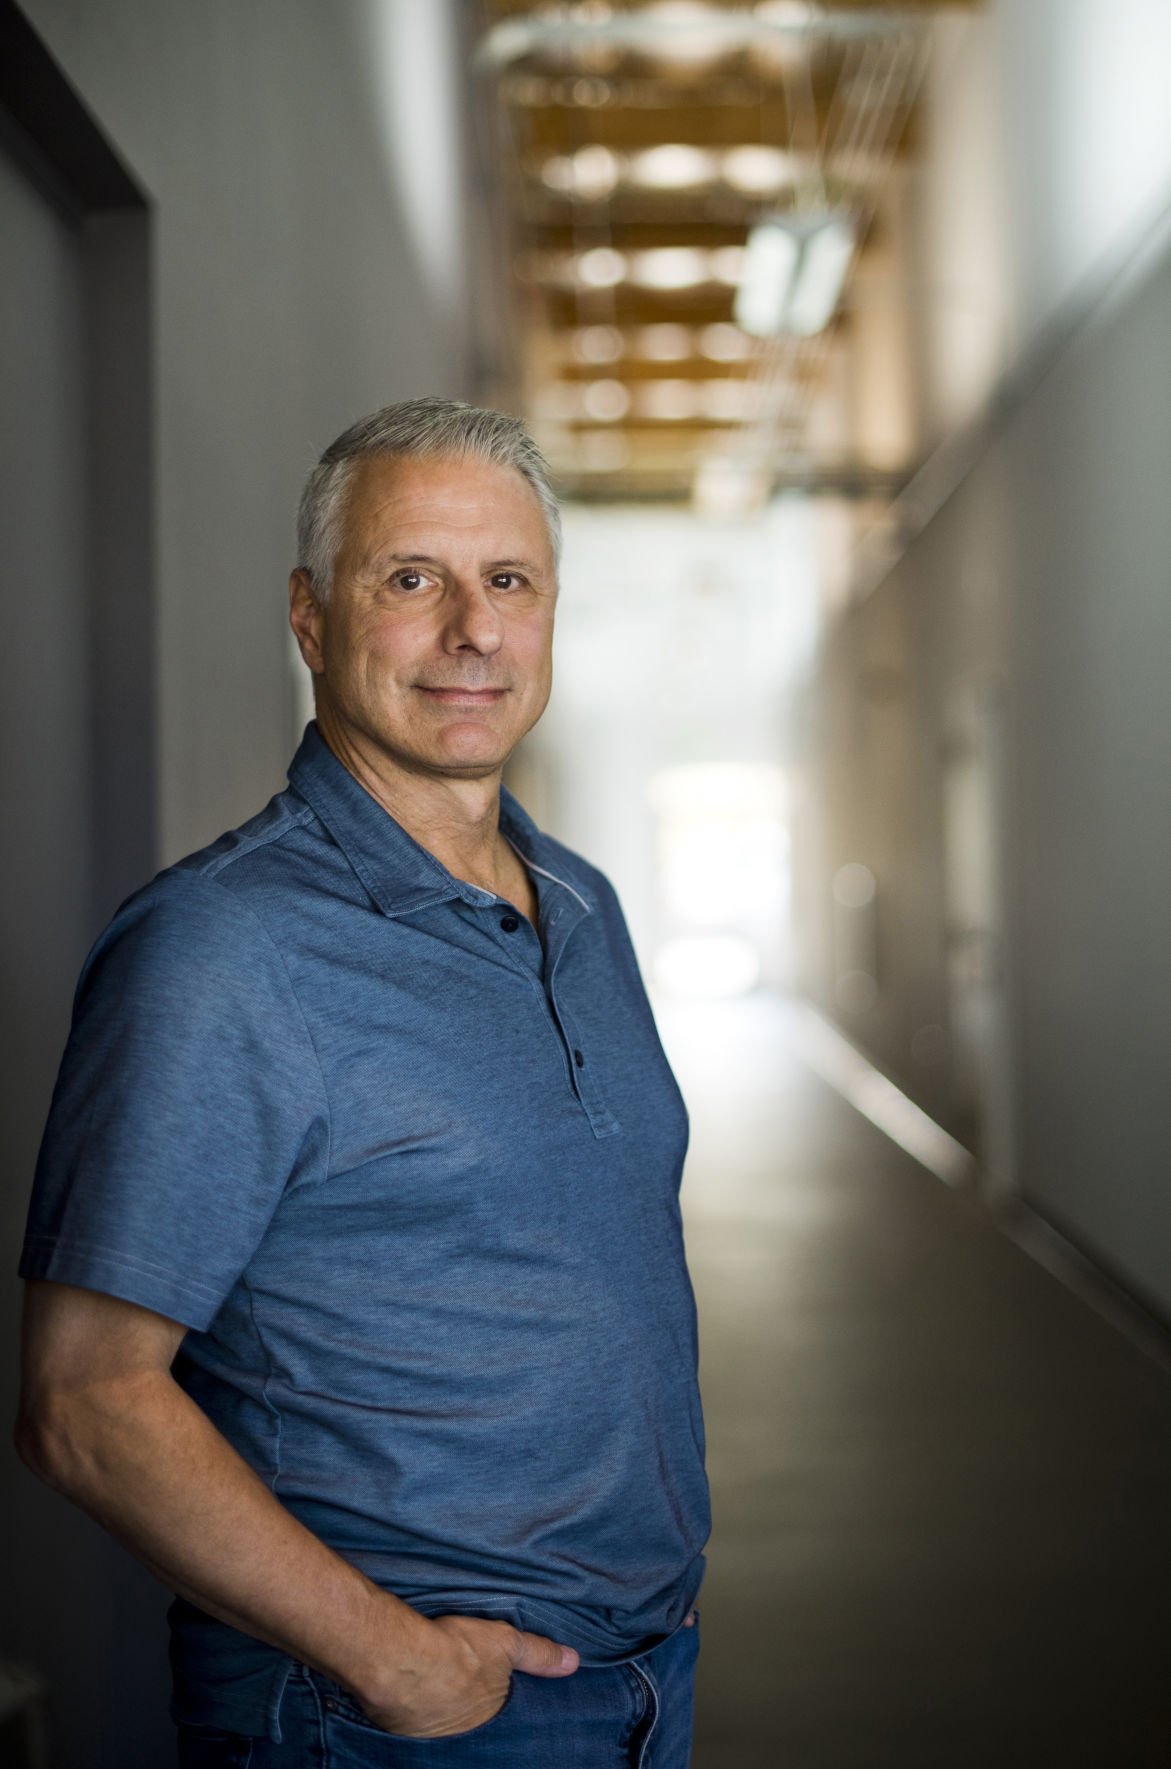 Bend venture capitalist hunts for deals outside Silicon Valley